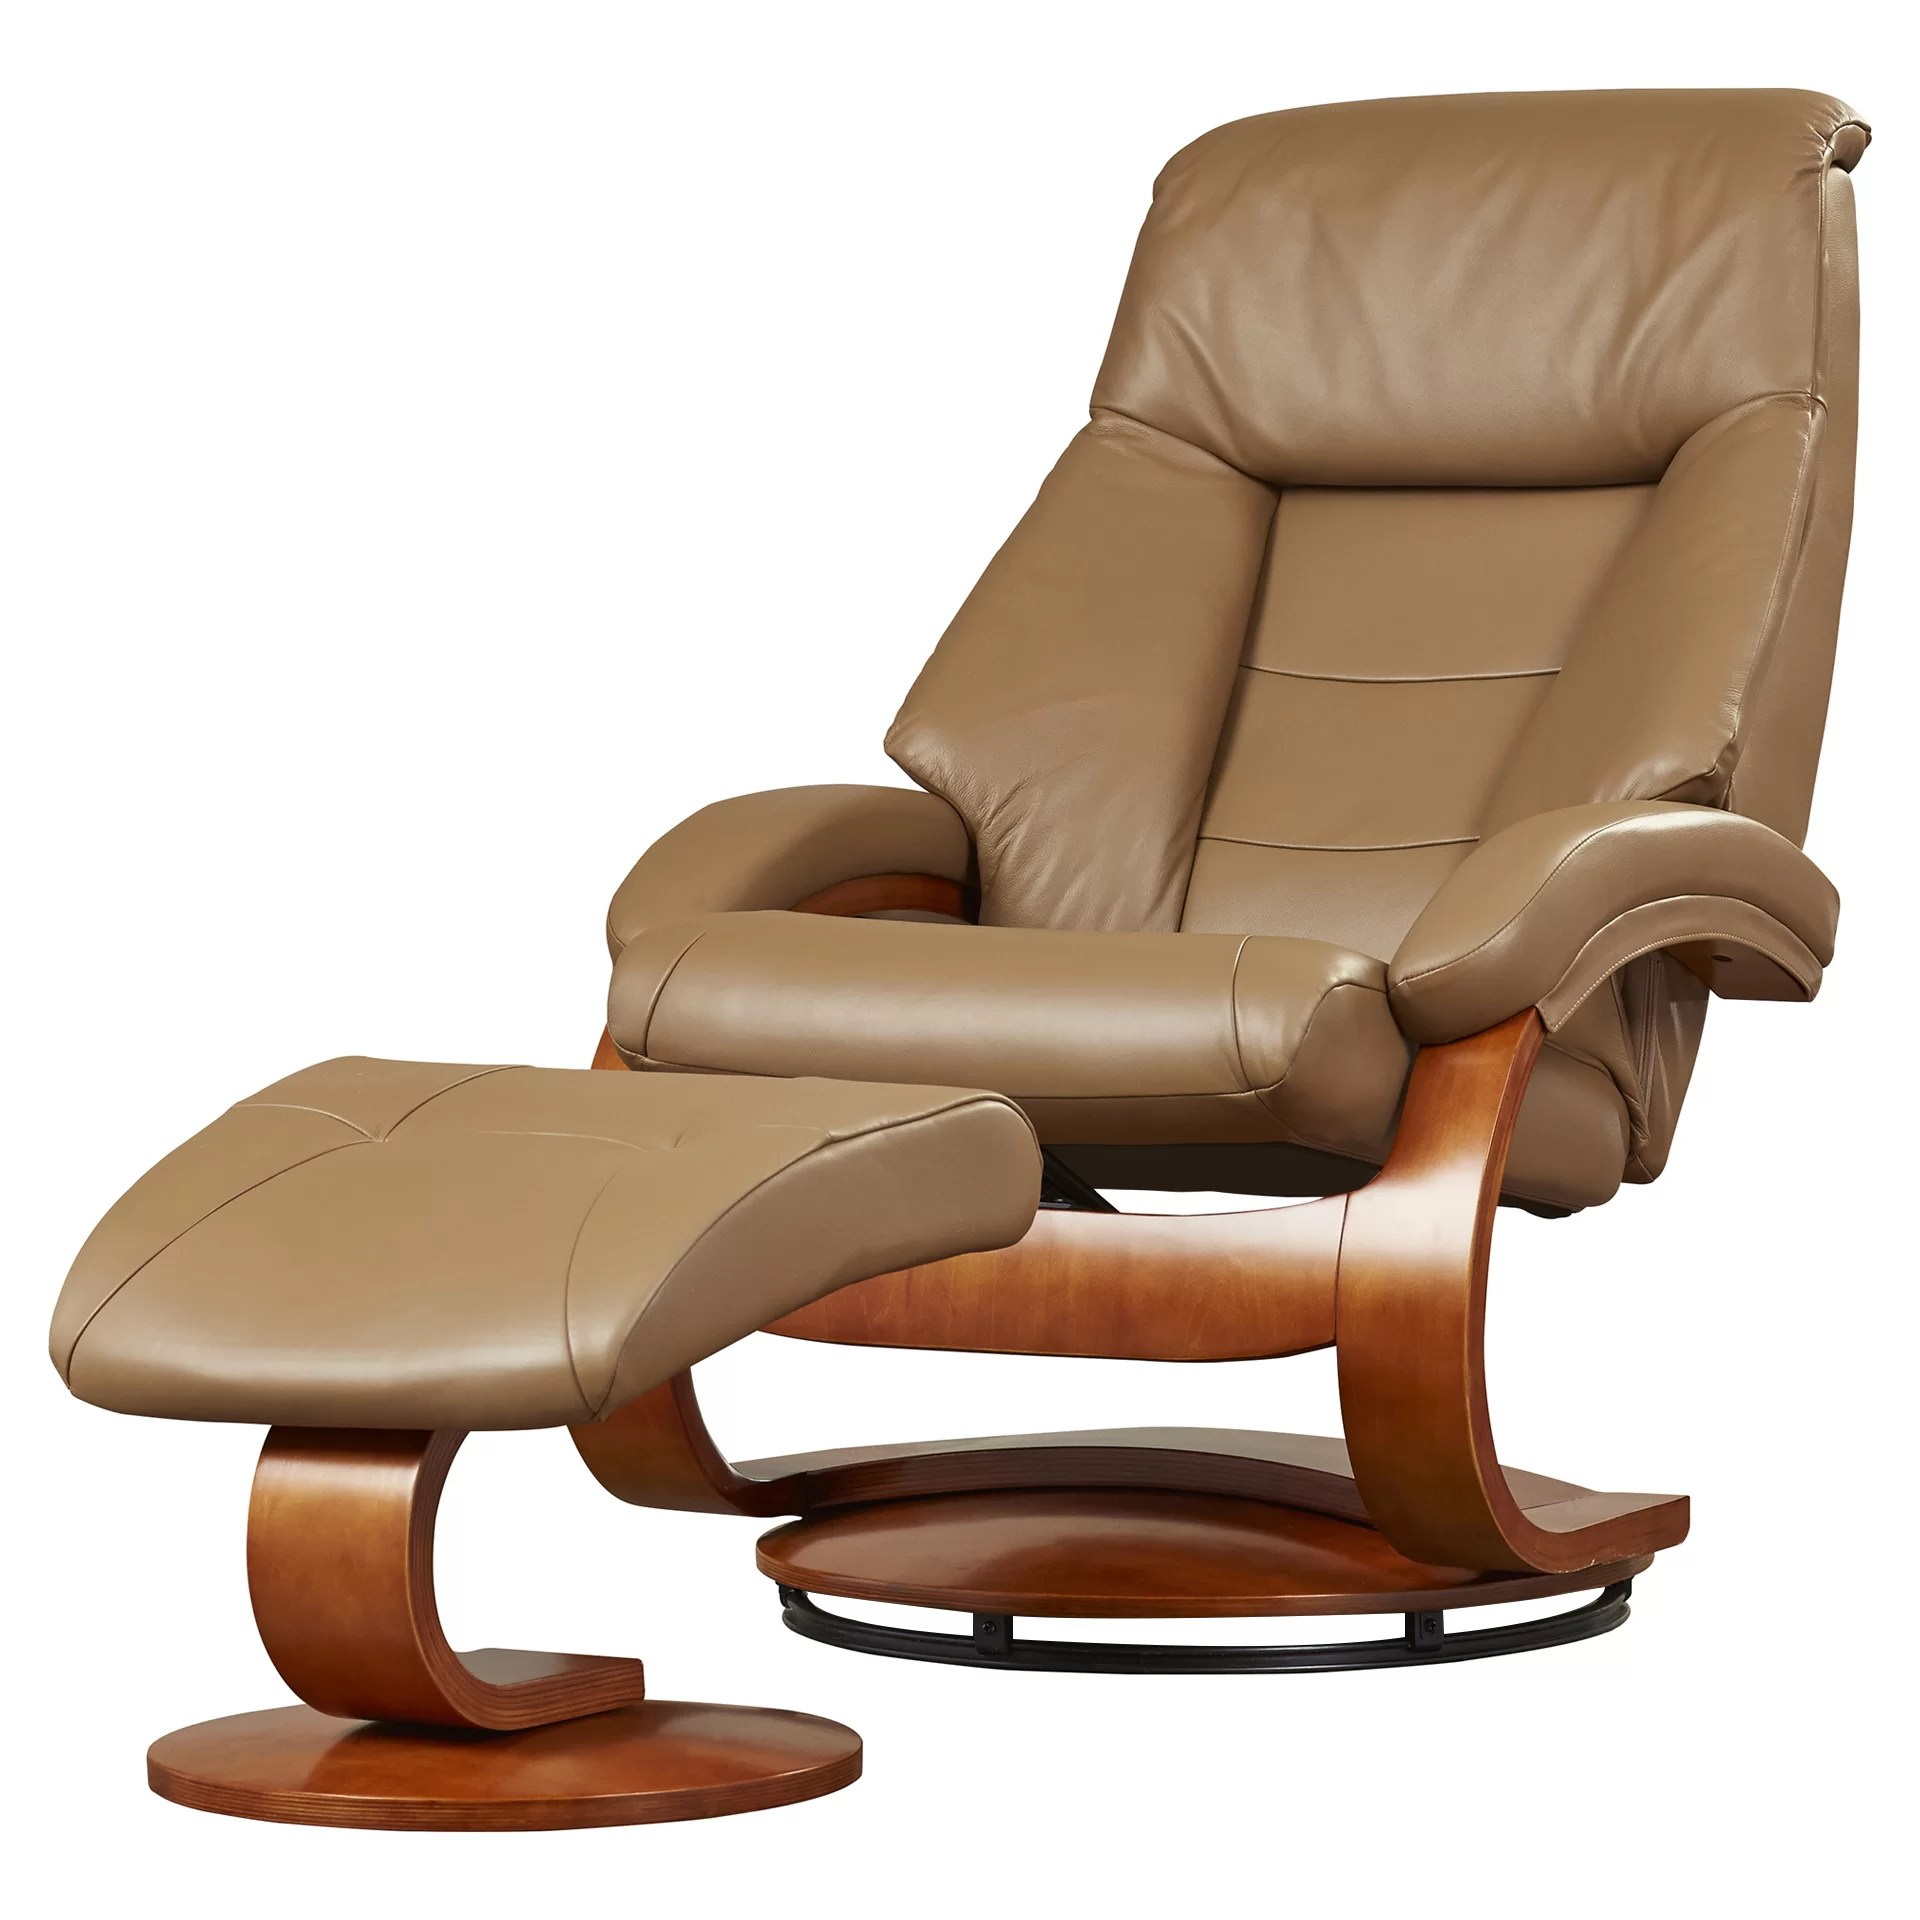 Ergonomic Living Room Chair Varick Gallery Leather Ergonomic Recliner And Ottoman